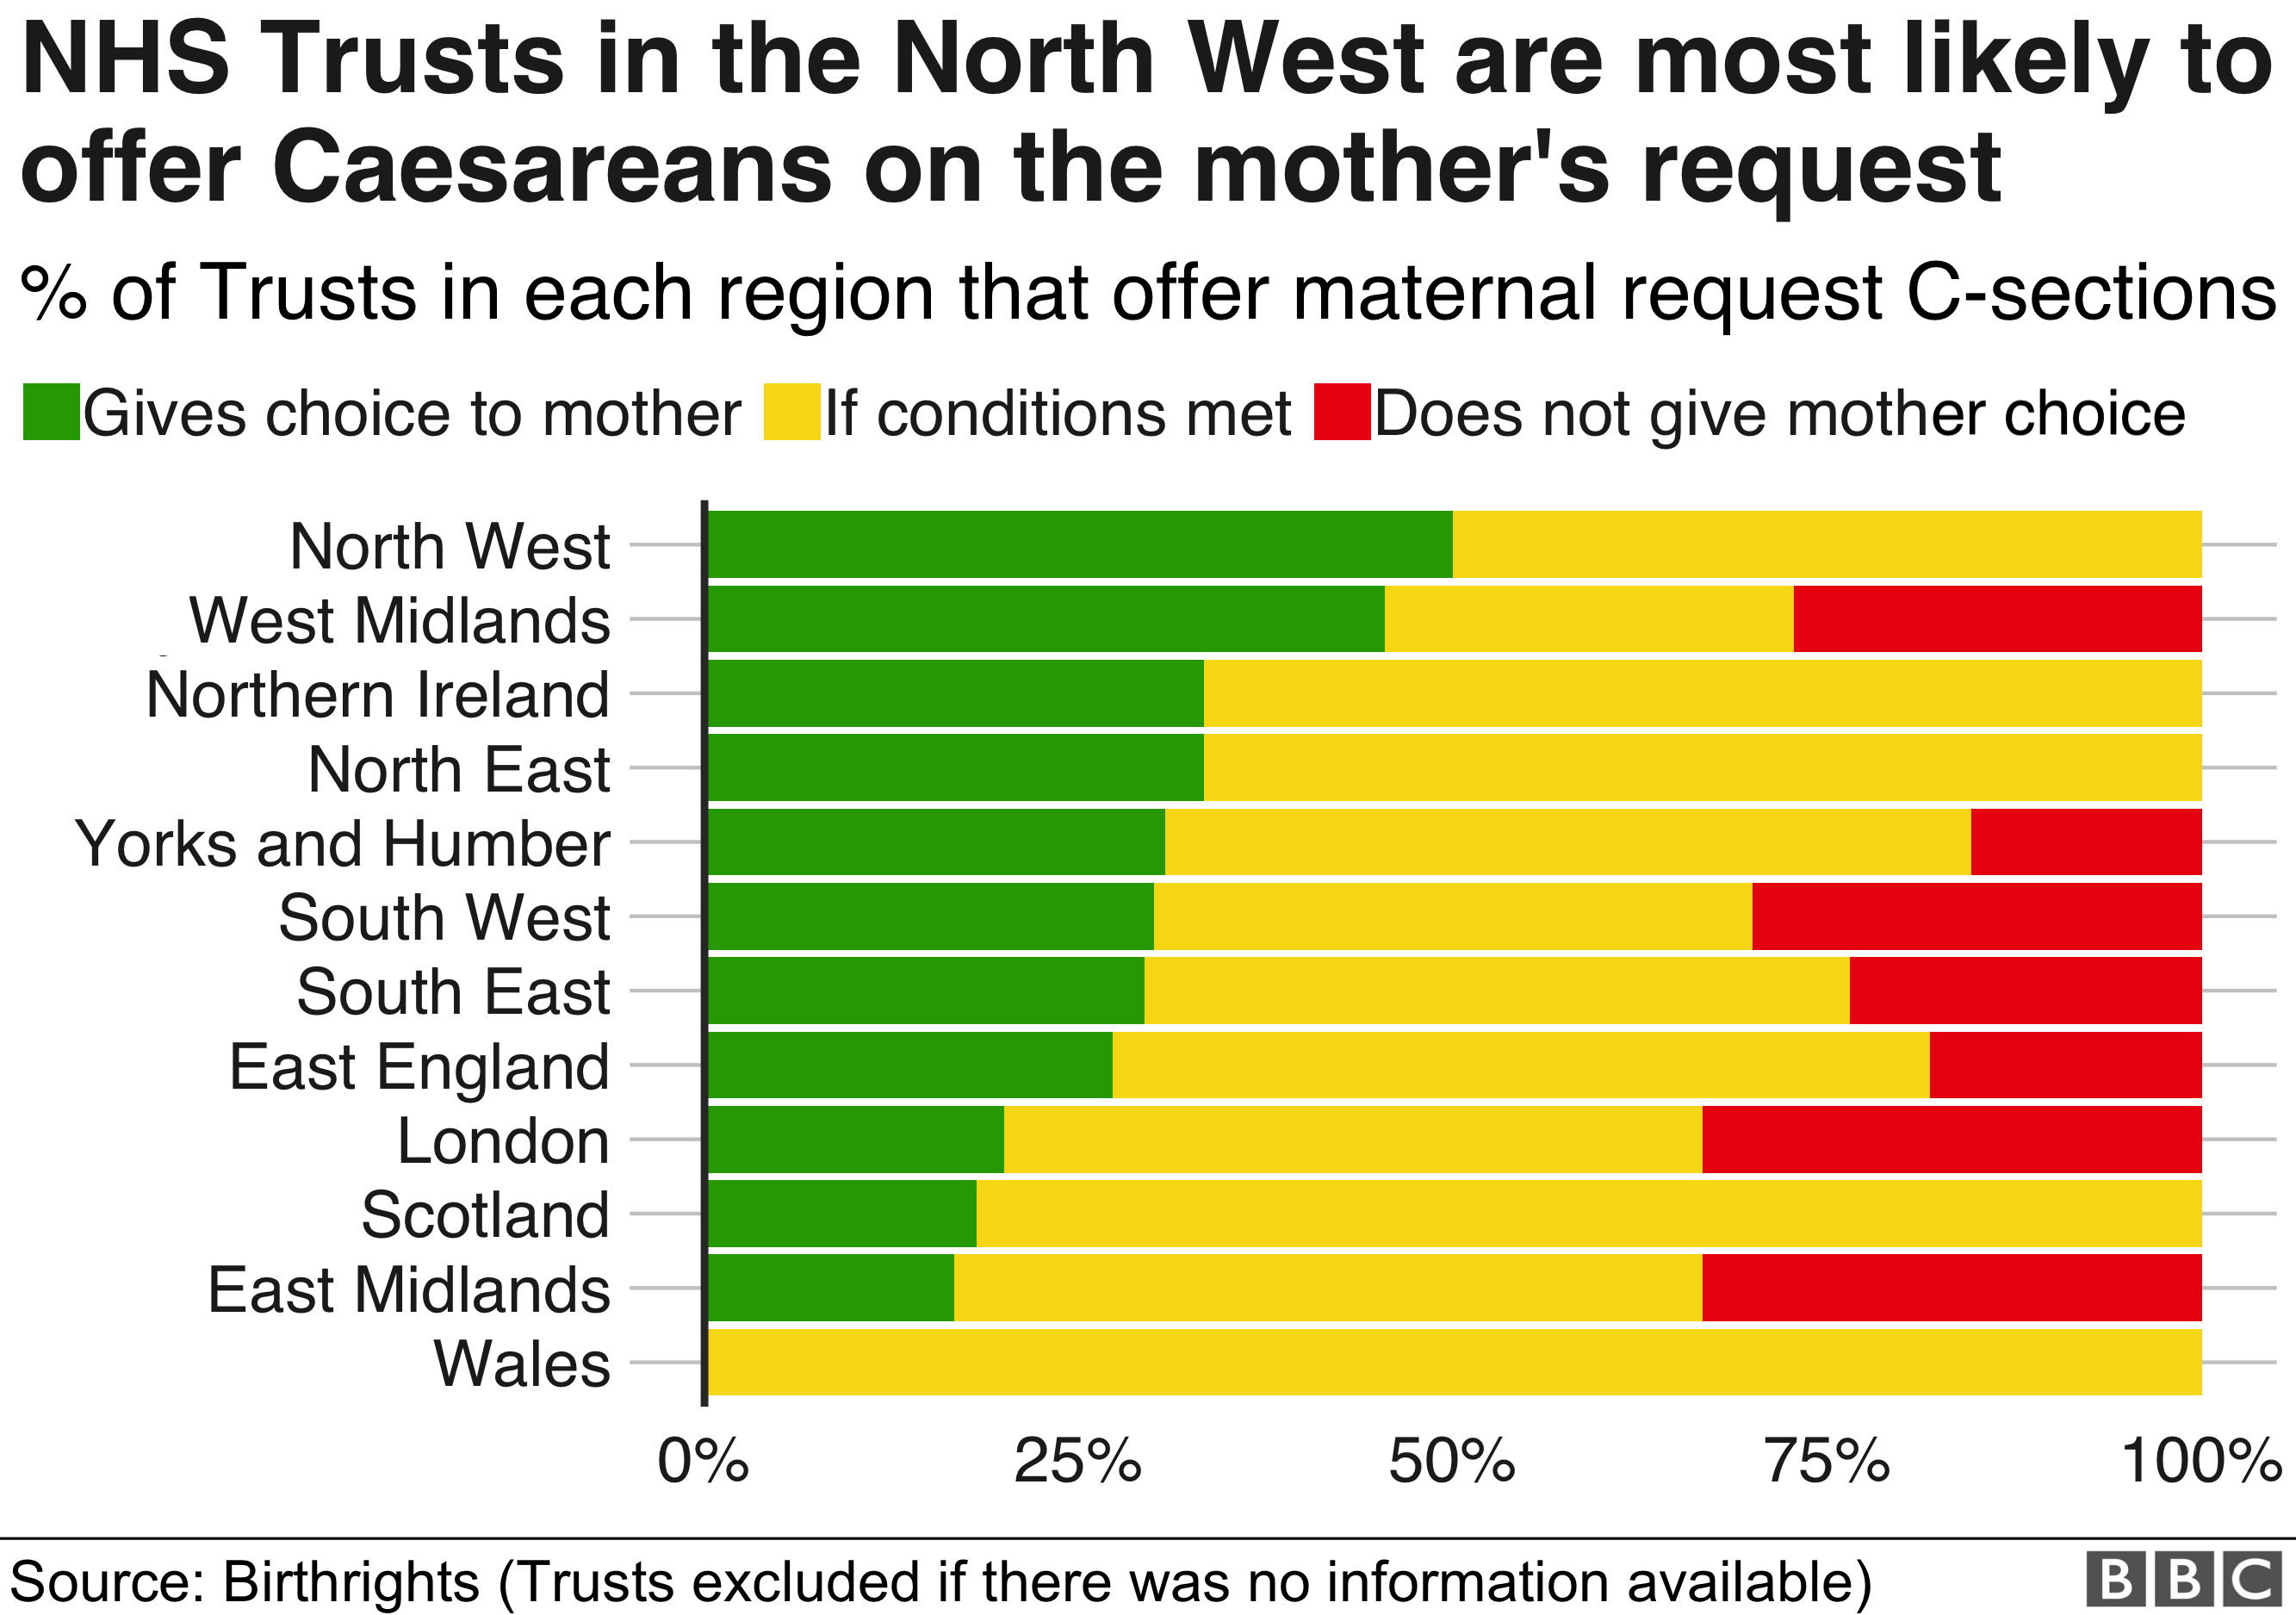 Mothers in the north west are most likely to offer mothers the choice of whether to have a caesarean or not